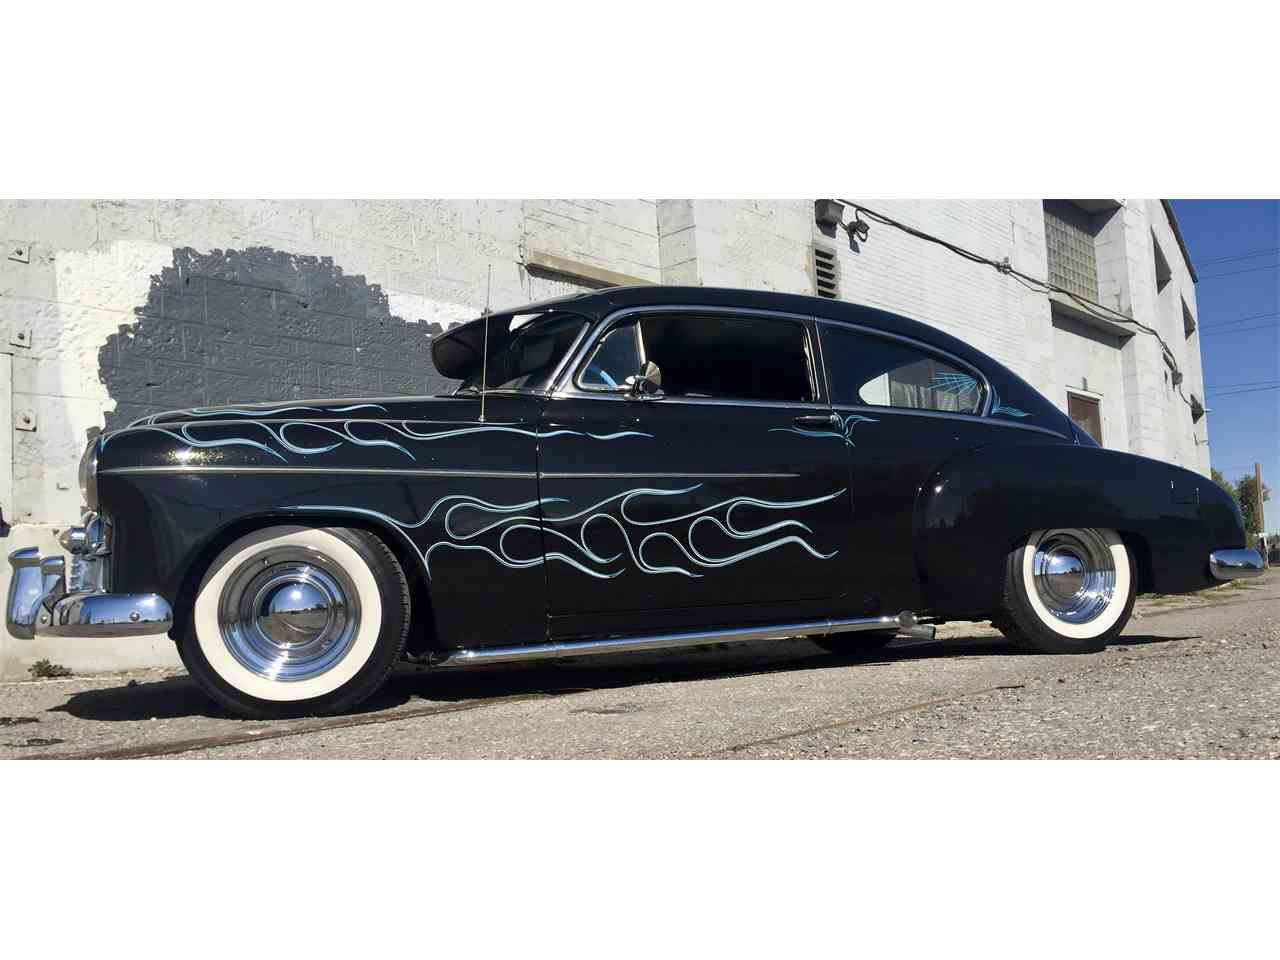 All Chevy 1951 chevrolet fleetline : 1949 to 1951 Chevrolet Fleetline for Sale on ClassicCars.com